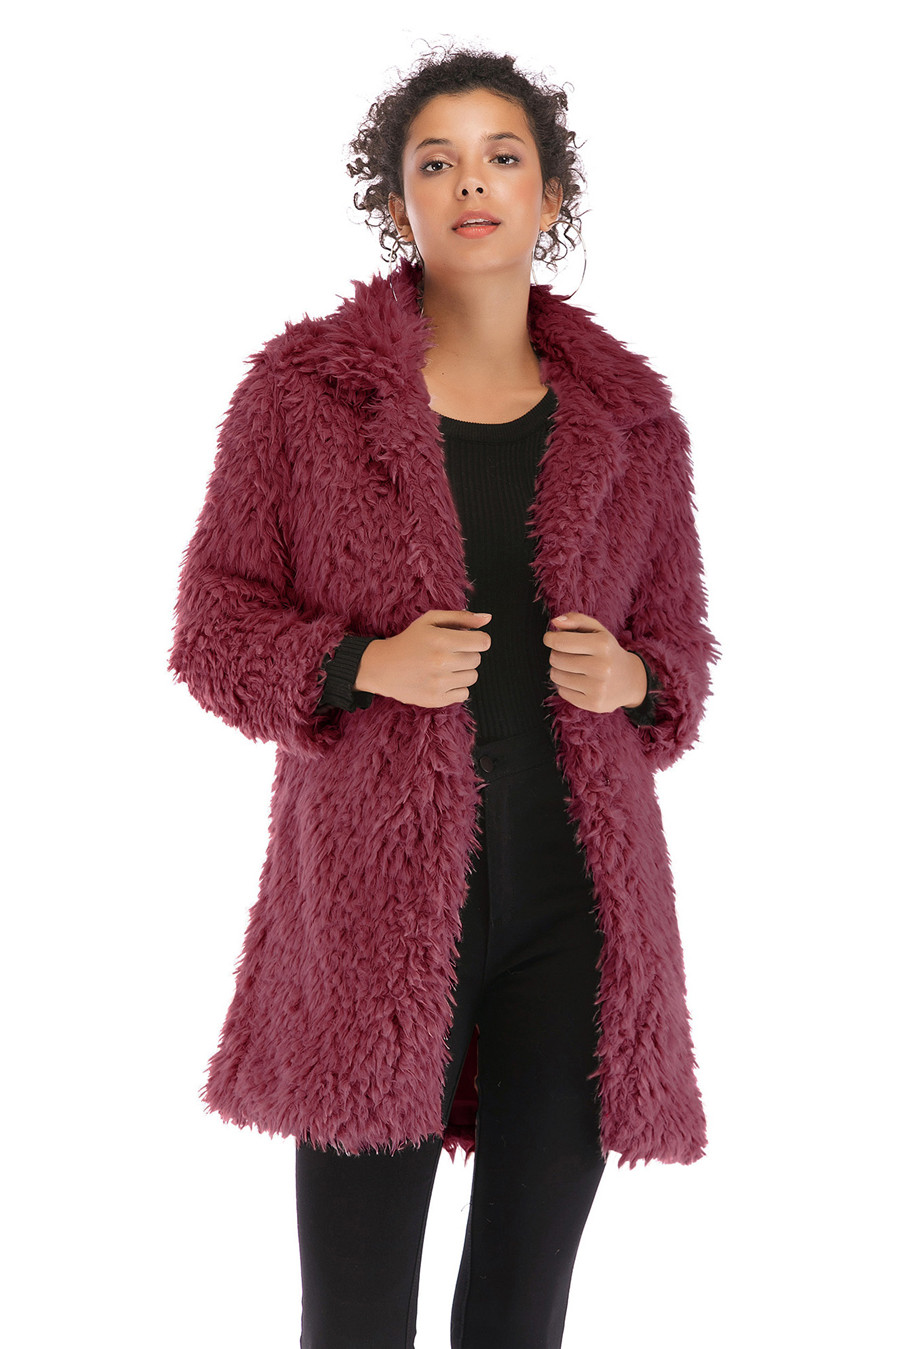 Gladiolus 2018 Women Autumn Winter Coat Turn-Down Collar Long Sleeve Covered Button Long Warm Shaggy Faux Fur Coat Women Jackets (12)